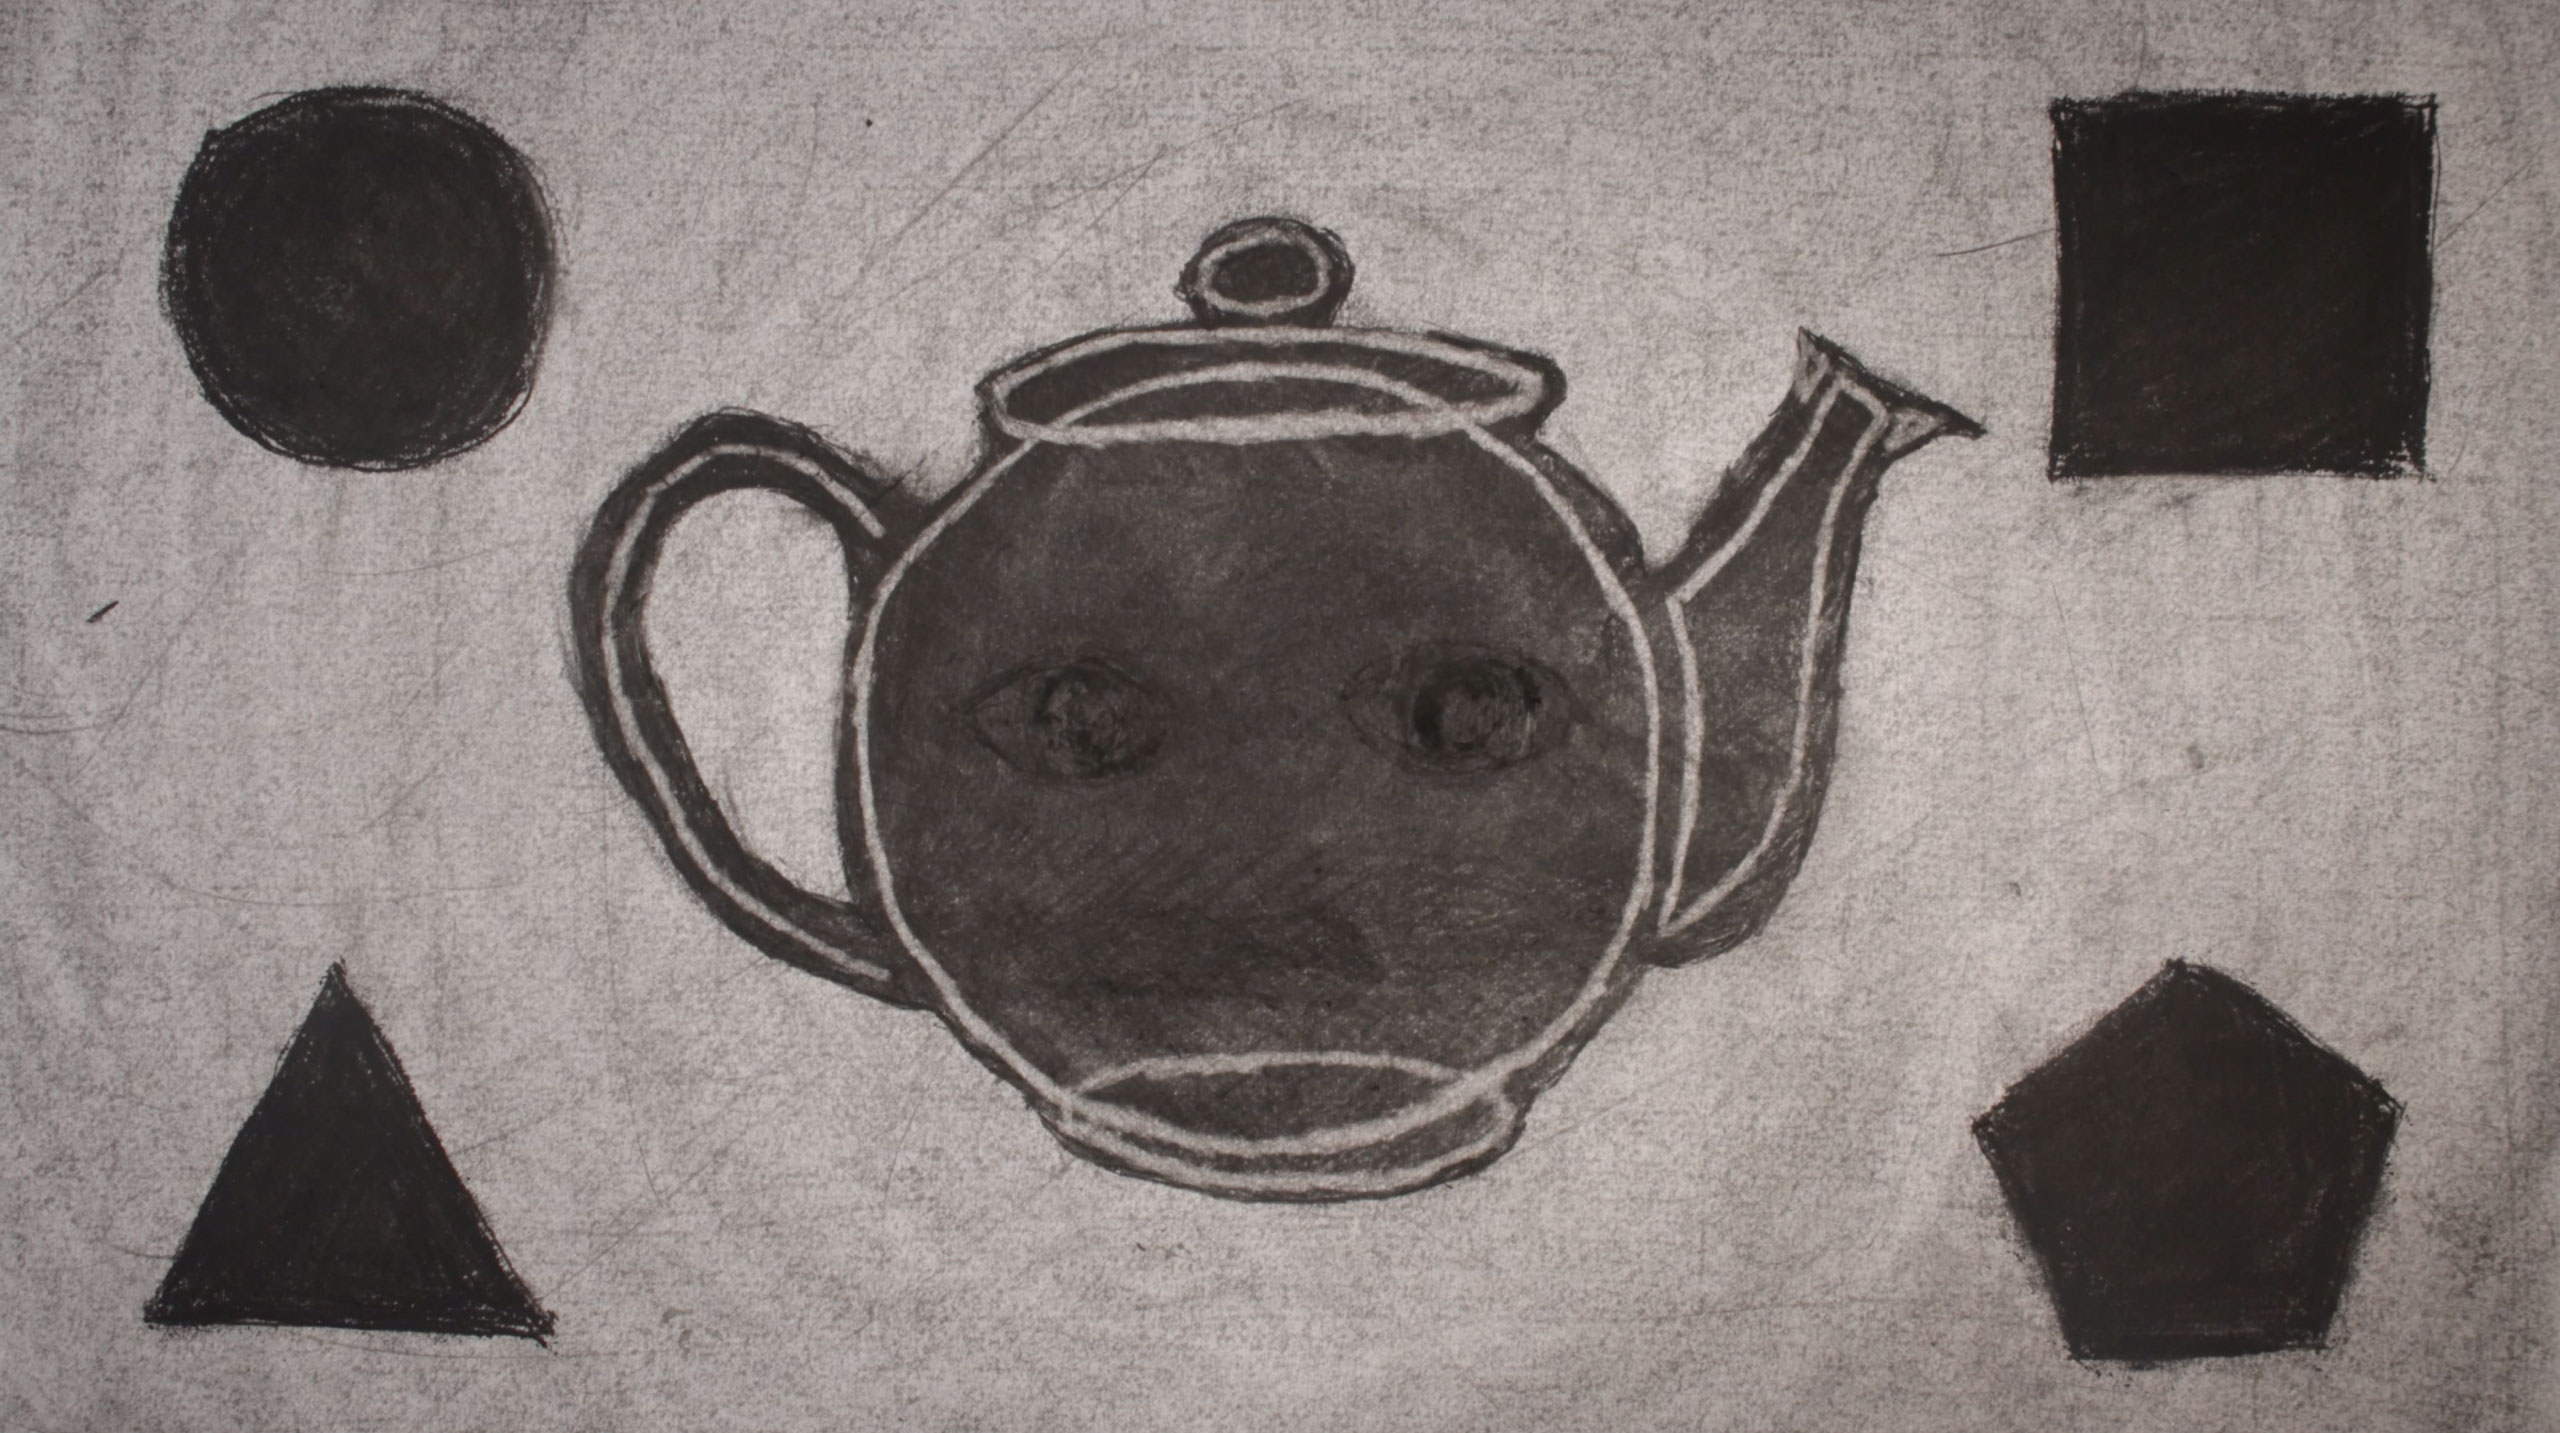 charcoal drawing of teacup with 4 shapes